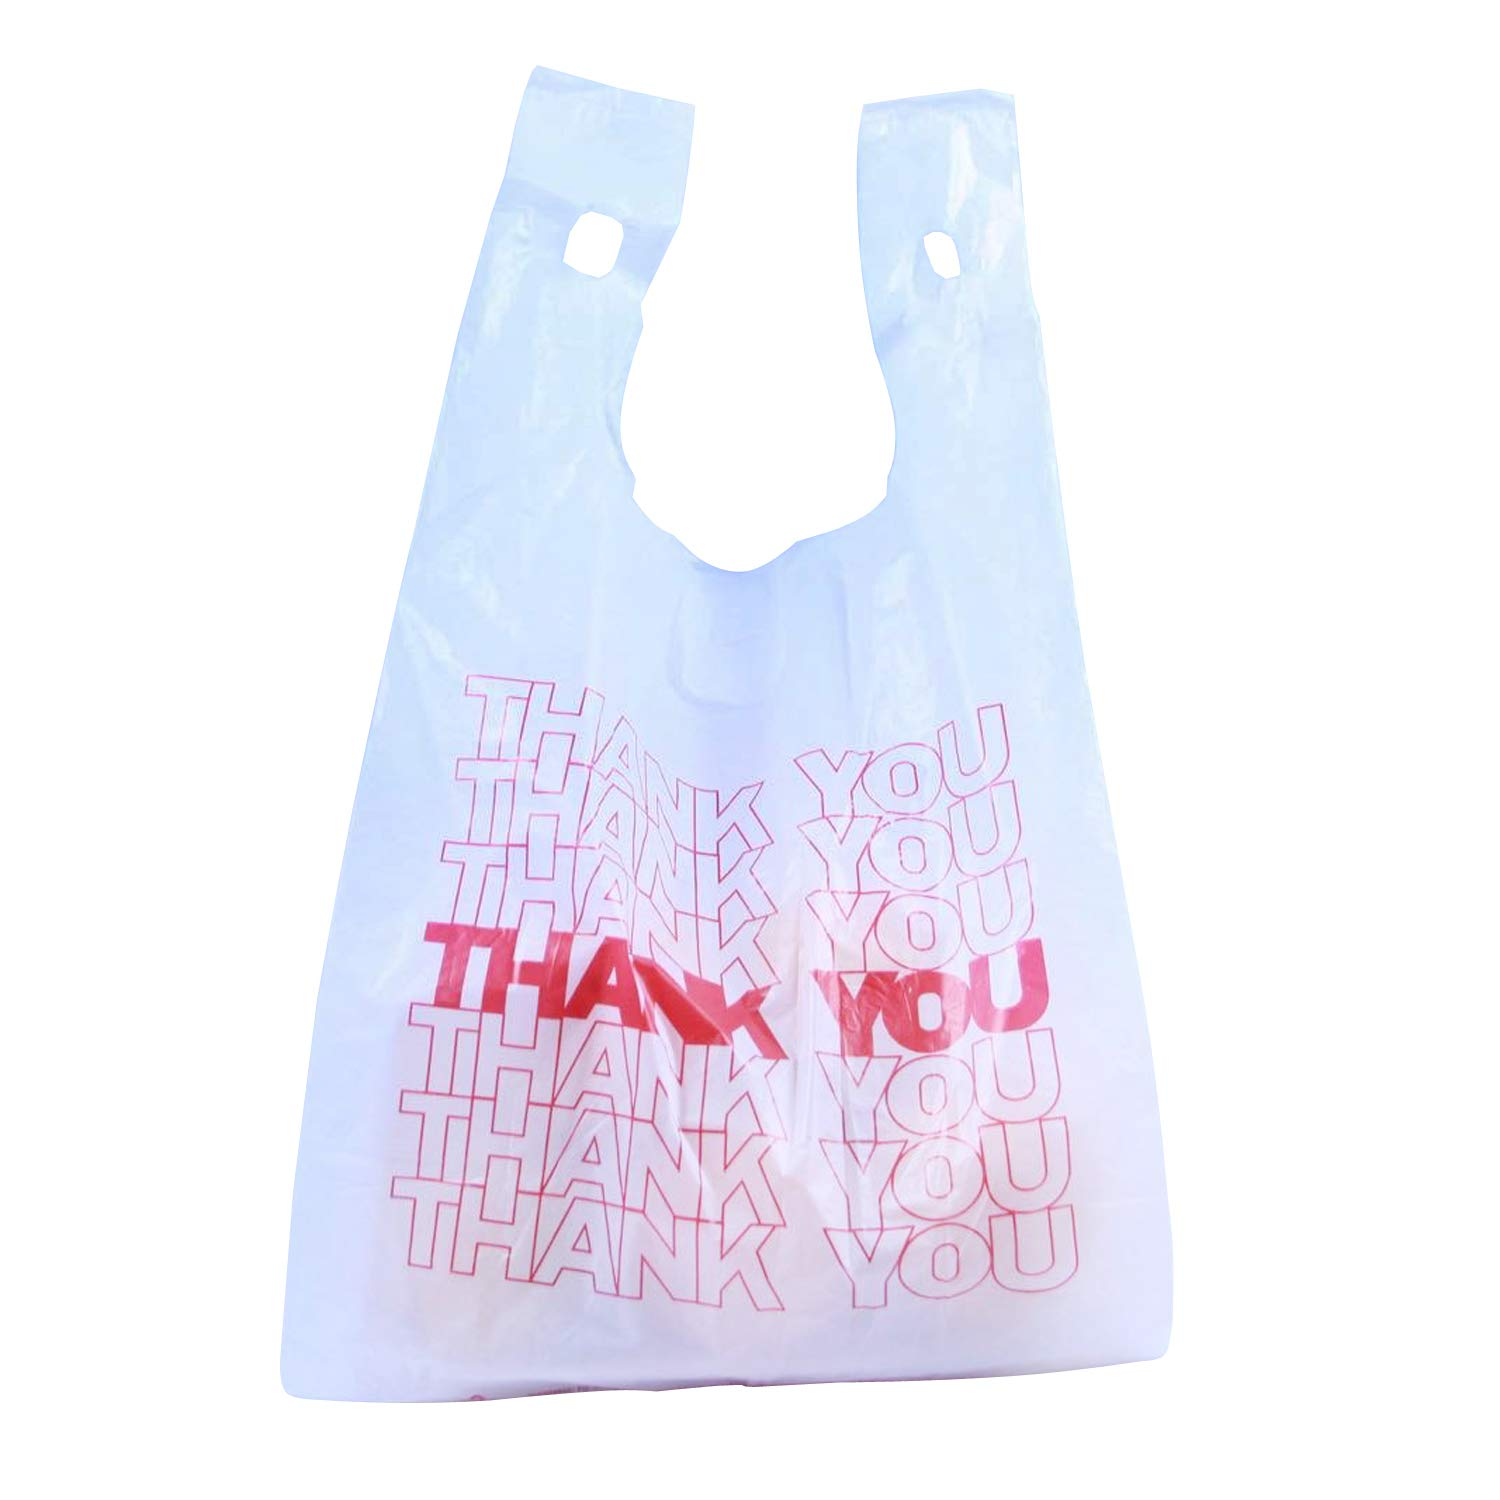 R Noble Thank You Reusable Grocery Plastic Bags, 600/300 Count, 1/6, 12″ X 6.5″ X 21″, 15mic